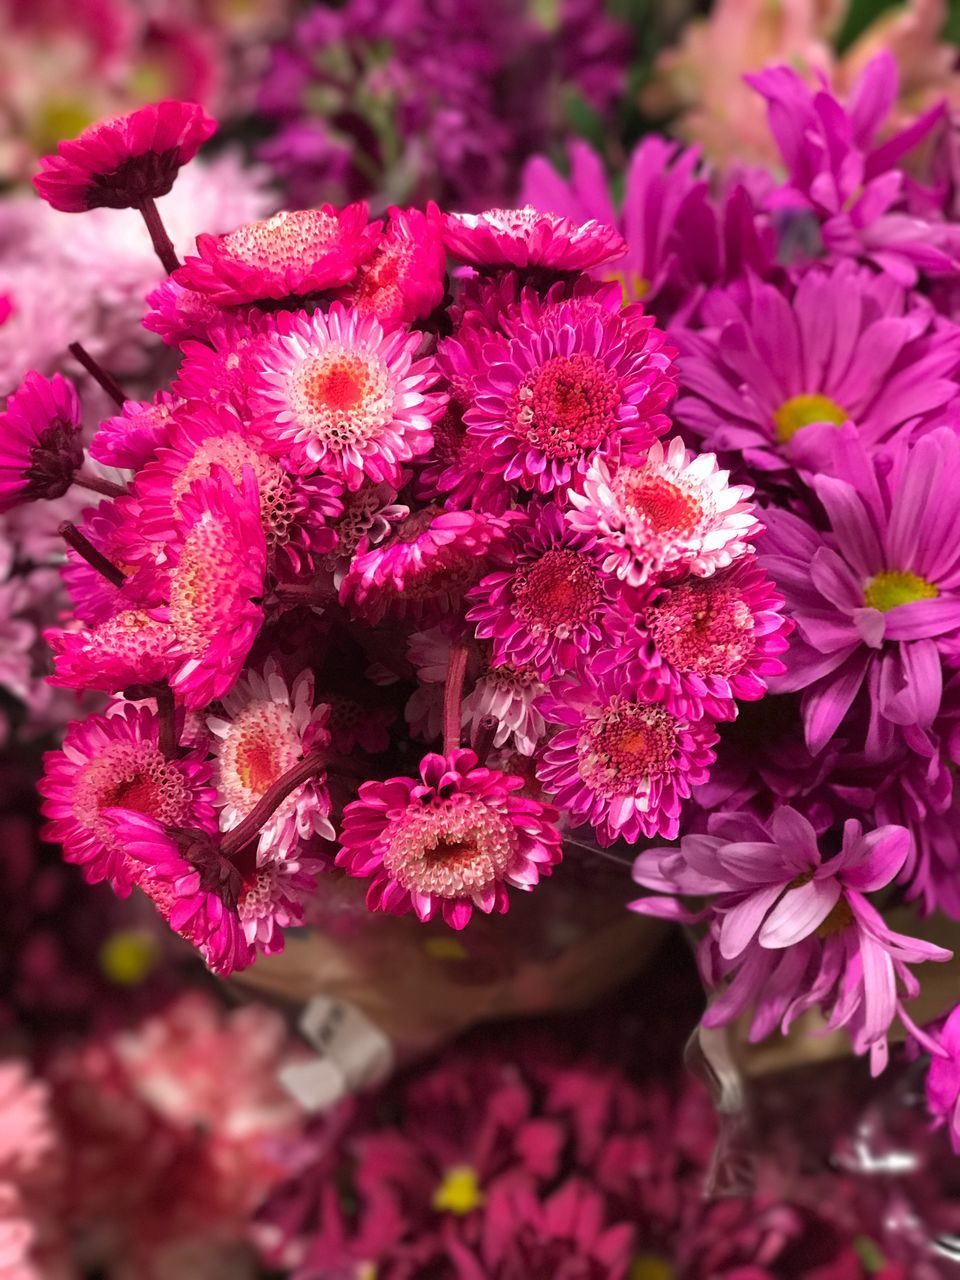 flower, fragility, growth, beauty in nature, petal, nature, freshness, pink color, no people, plant, flower head, blooming, day, close-up, outdoors